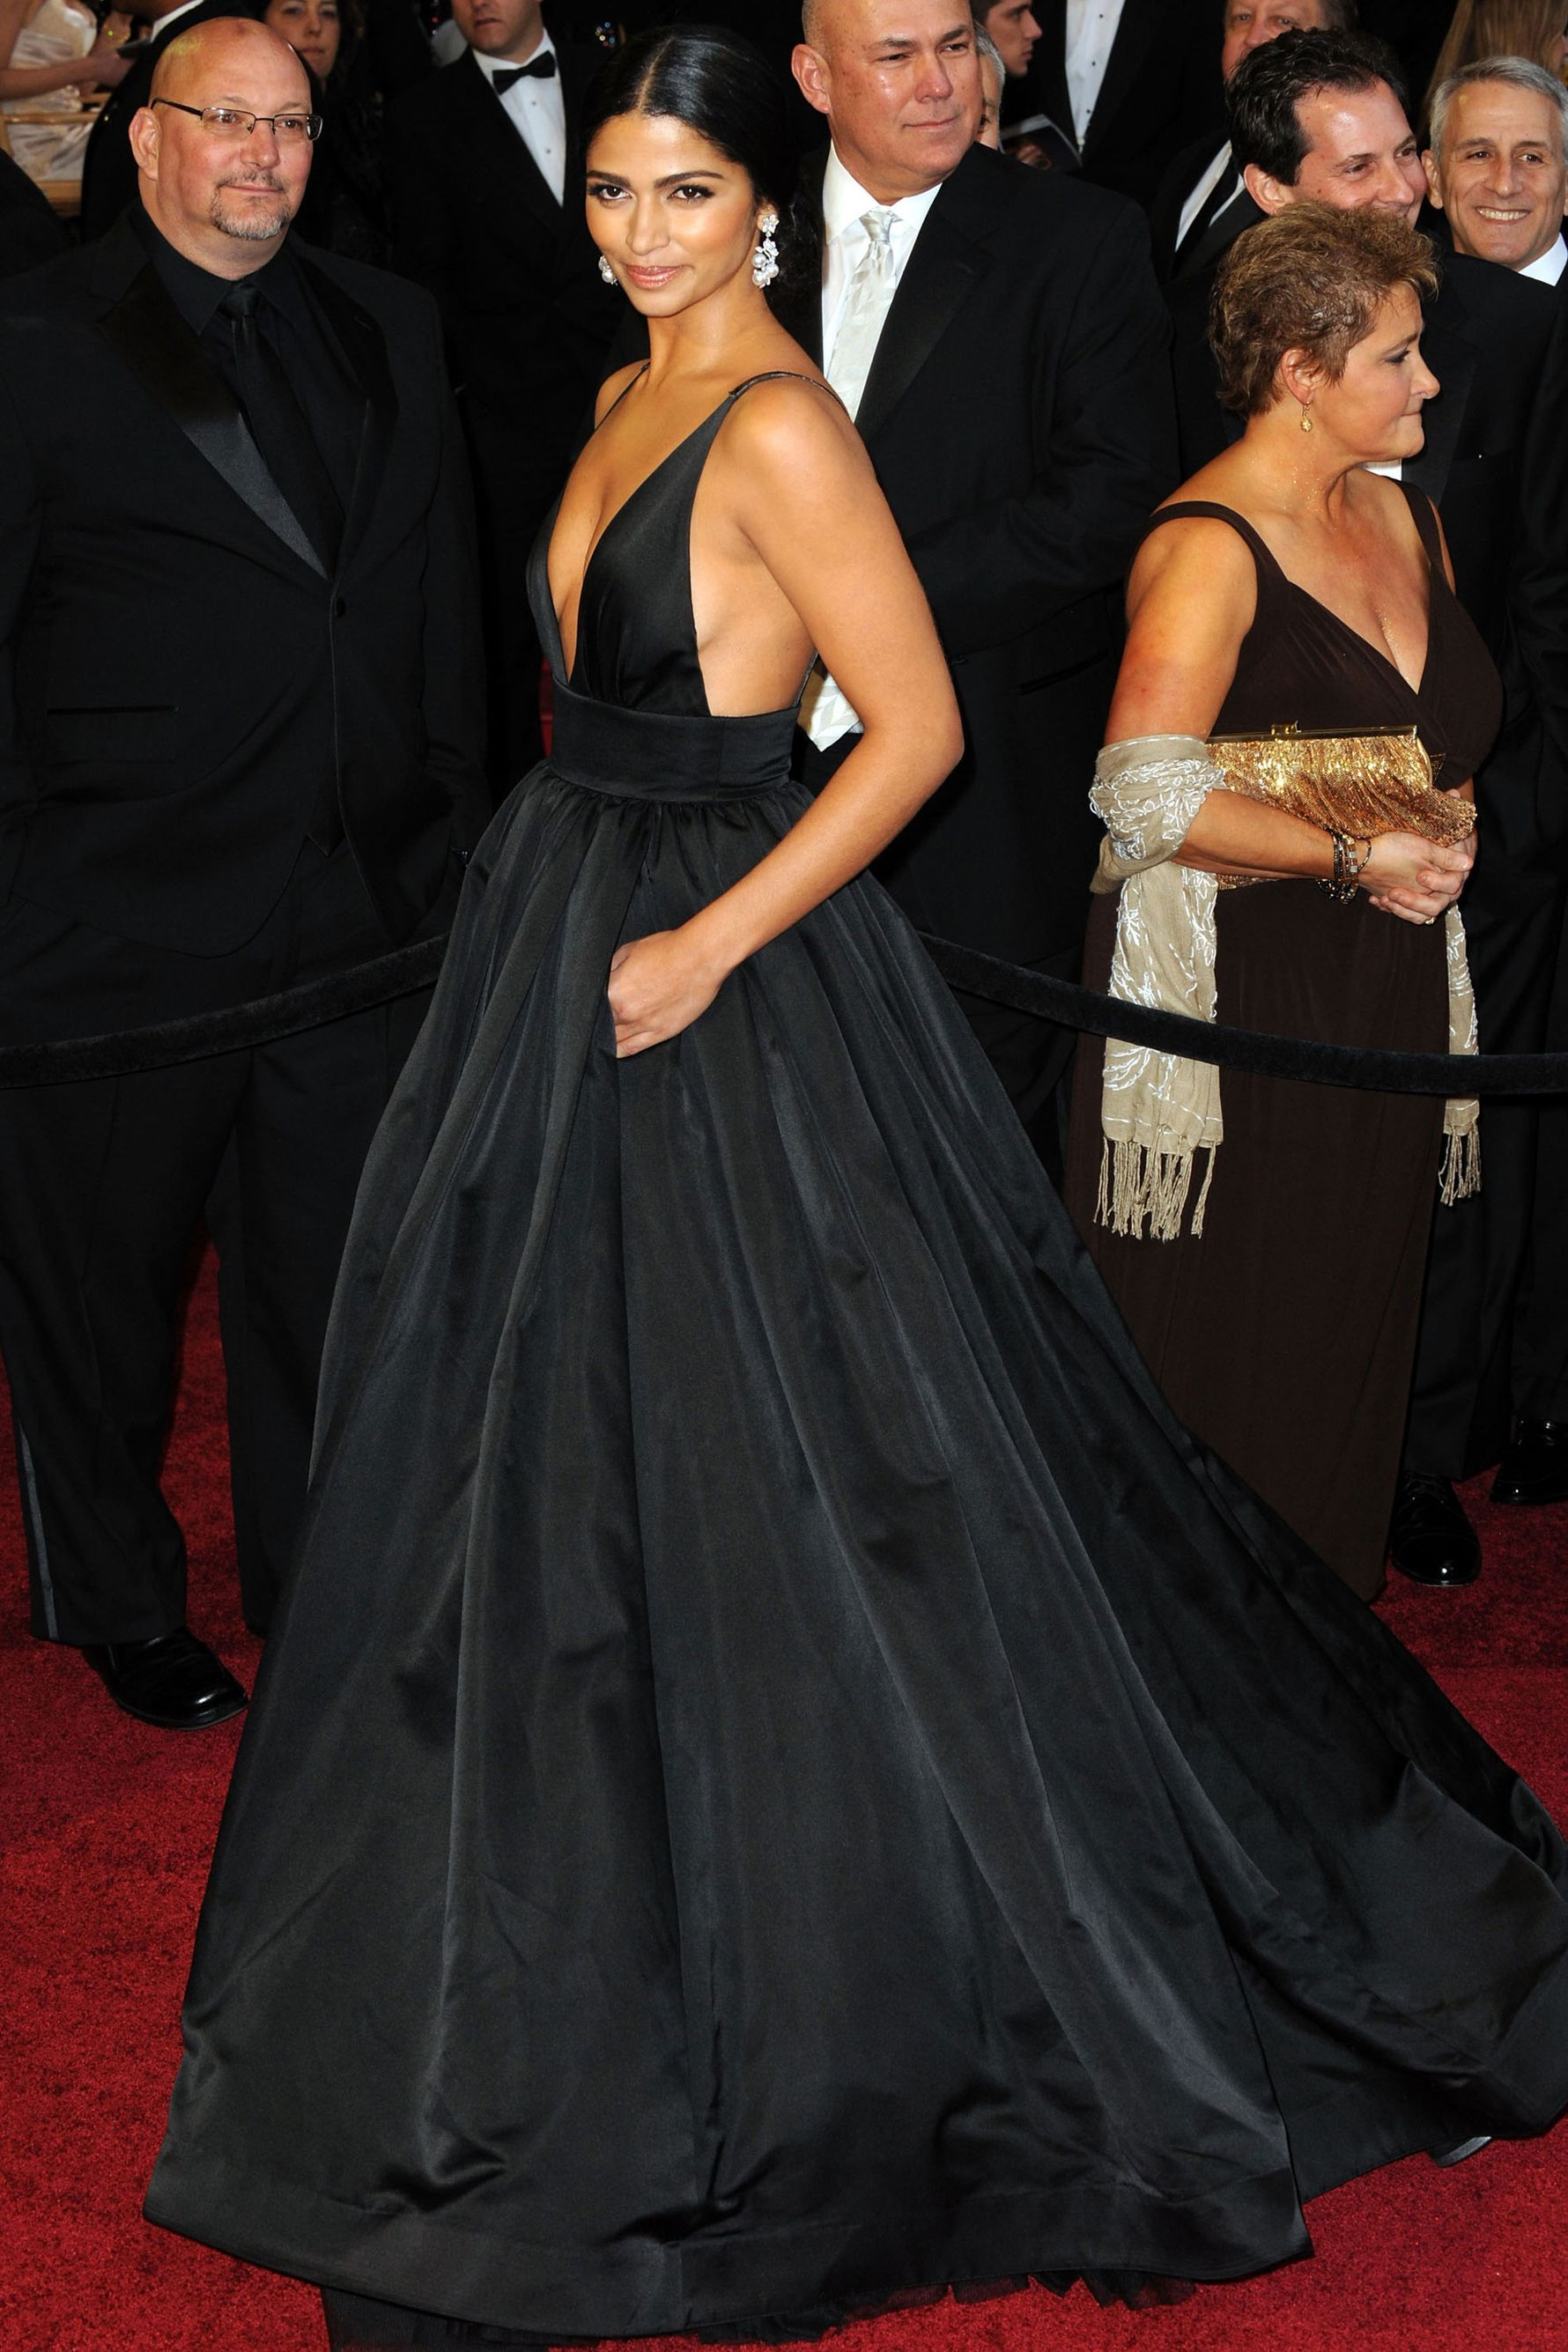 5a2256d1742 The Sexiest Oscars Dresses of All Time   Actresses   Oscar dresses ...